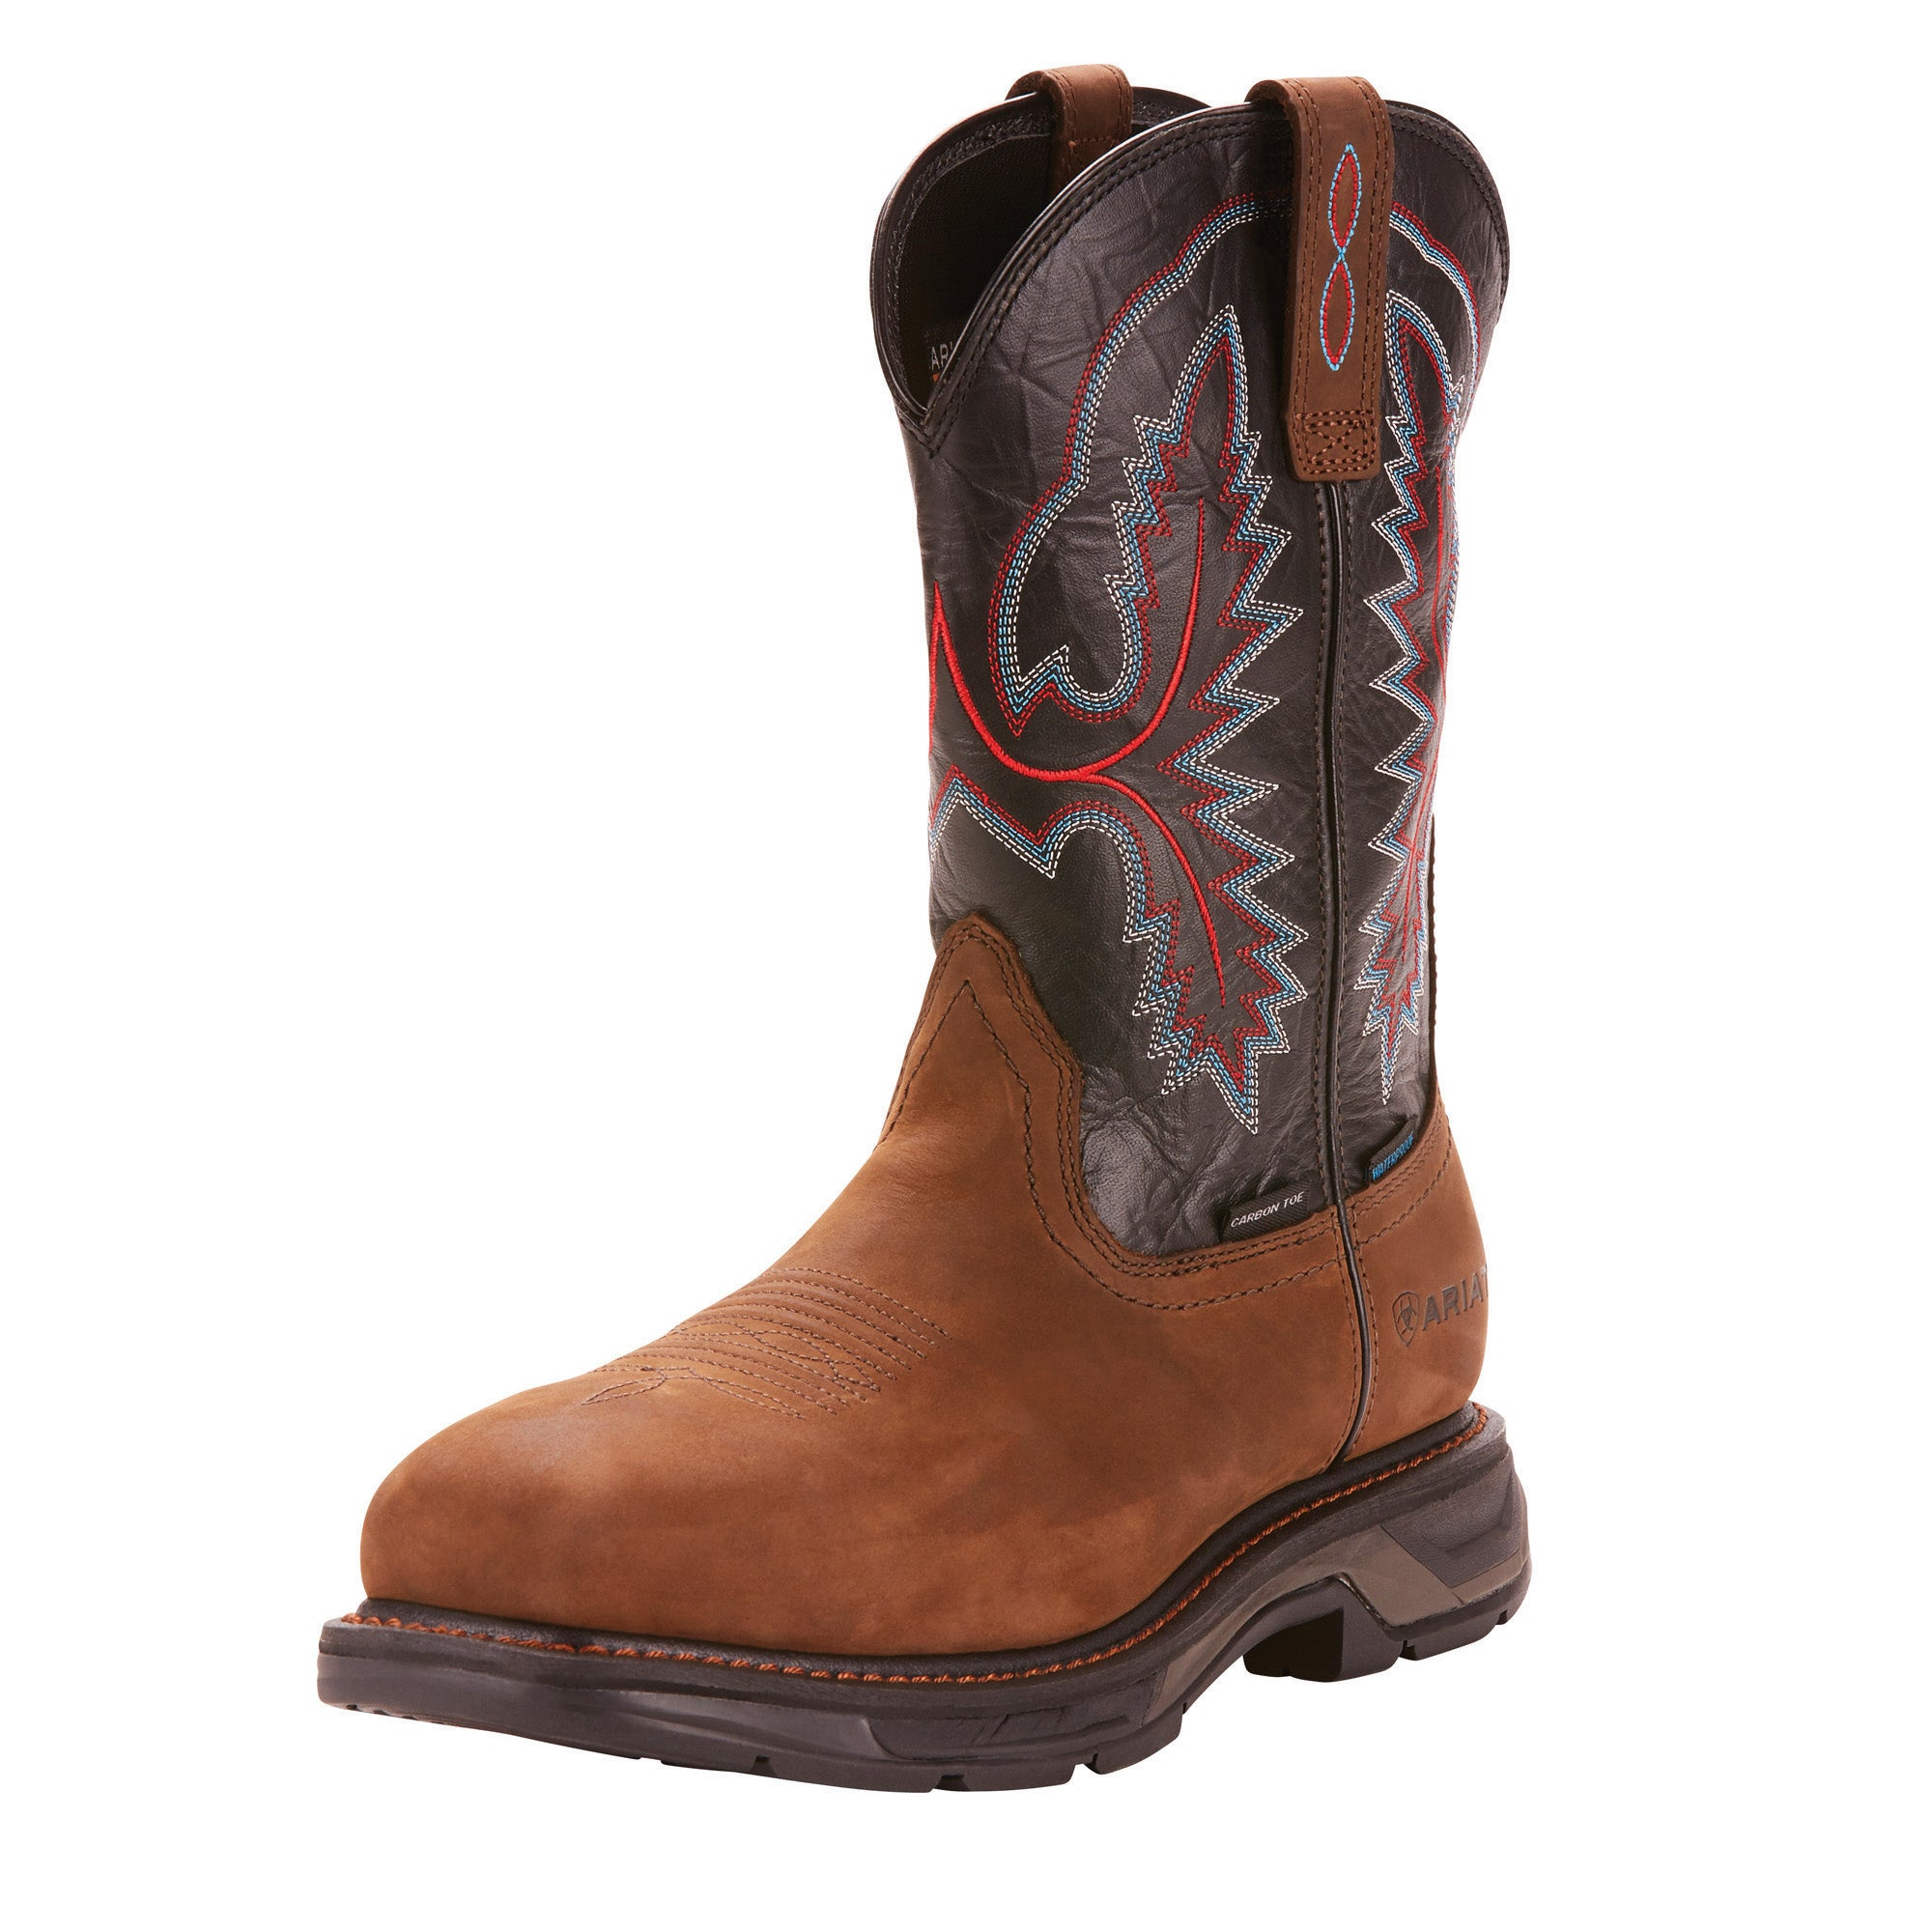 'Ariat' 10024968 - Workhog XT Waterproof Carbon Toe - Oily Distressed Brown / Black